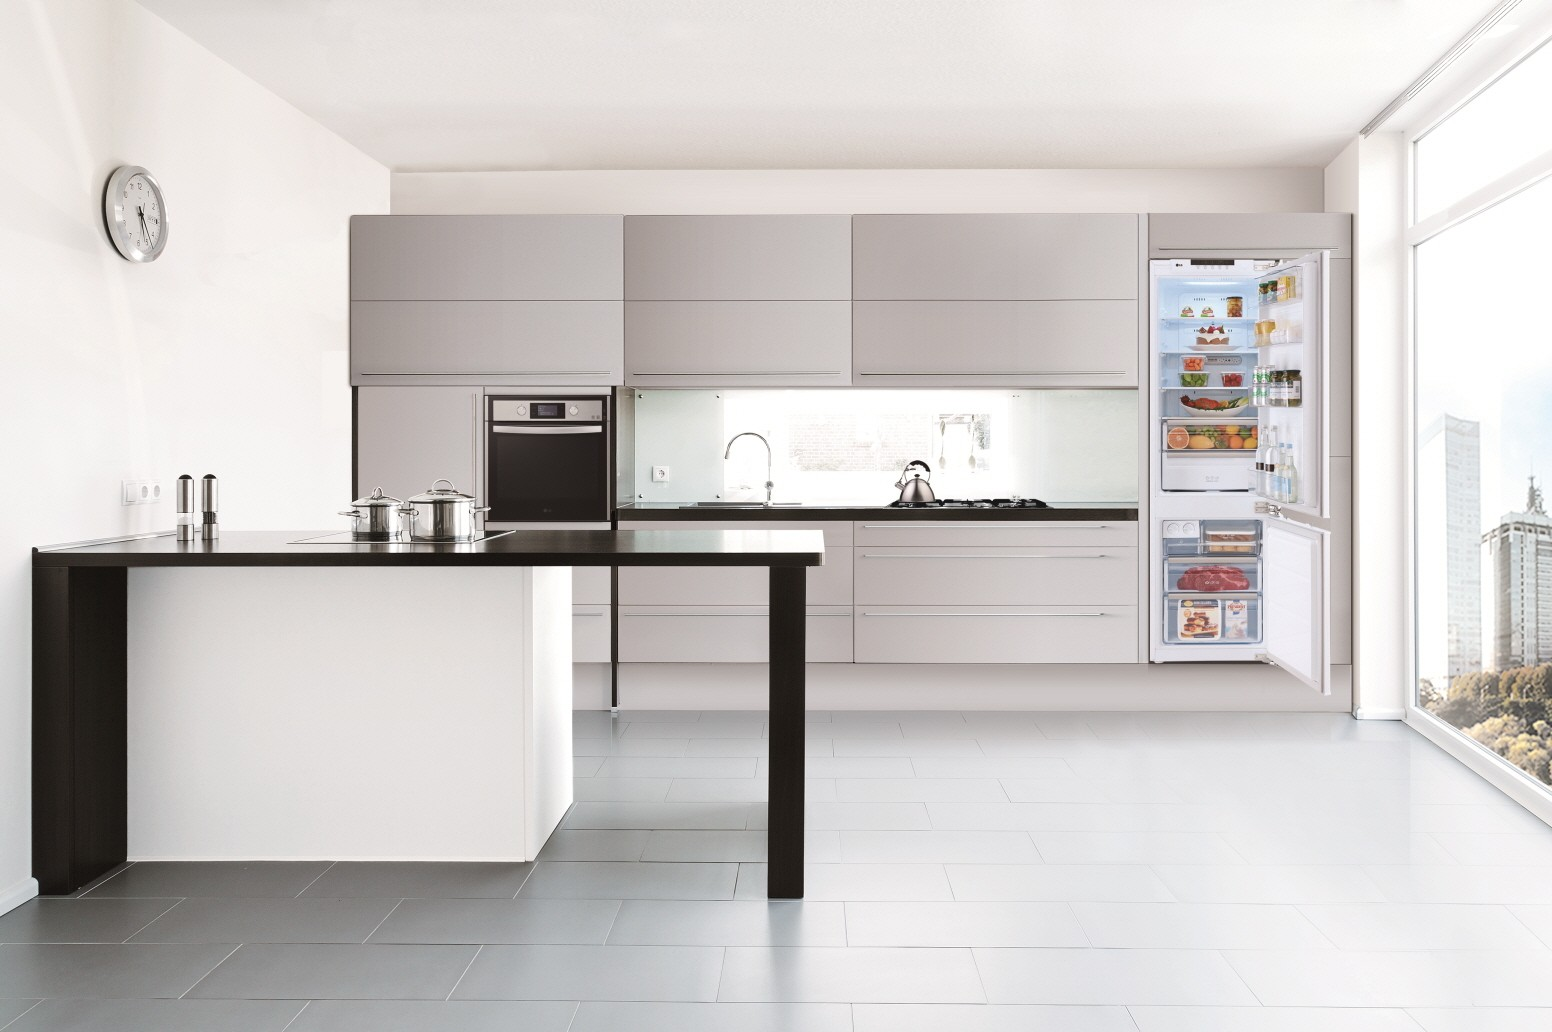 LG Studio line-ups, including oven, refrigerator, dishwasher, induction and gas cooktop, and Speed Oven featured in a kitchen.